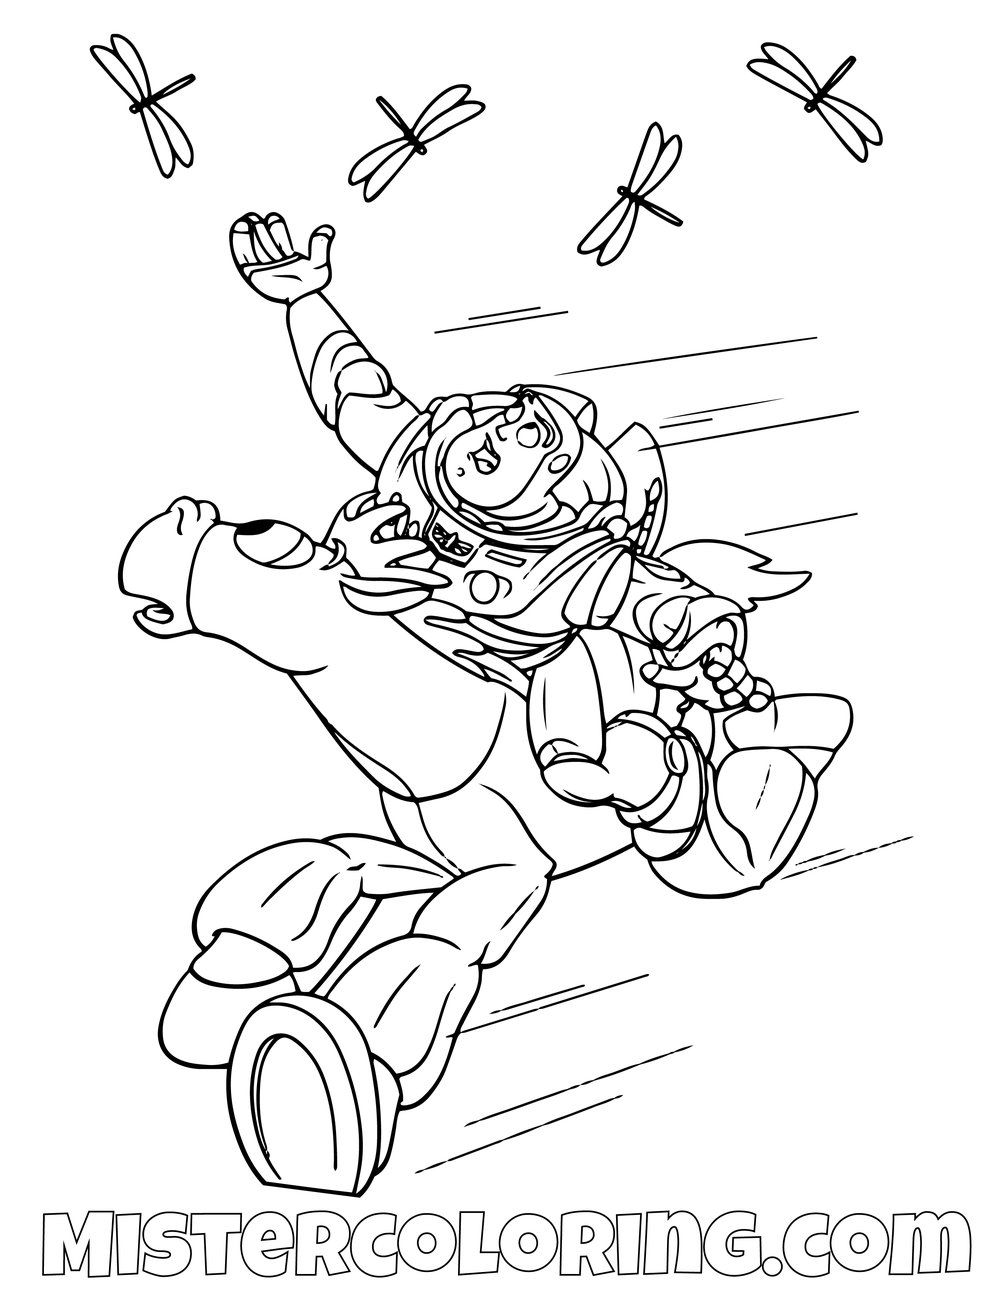 Free Printable Buzz Lightyear Coloring Pages For Kids Toy Story